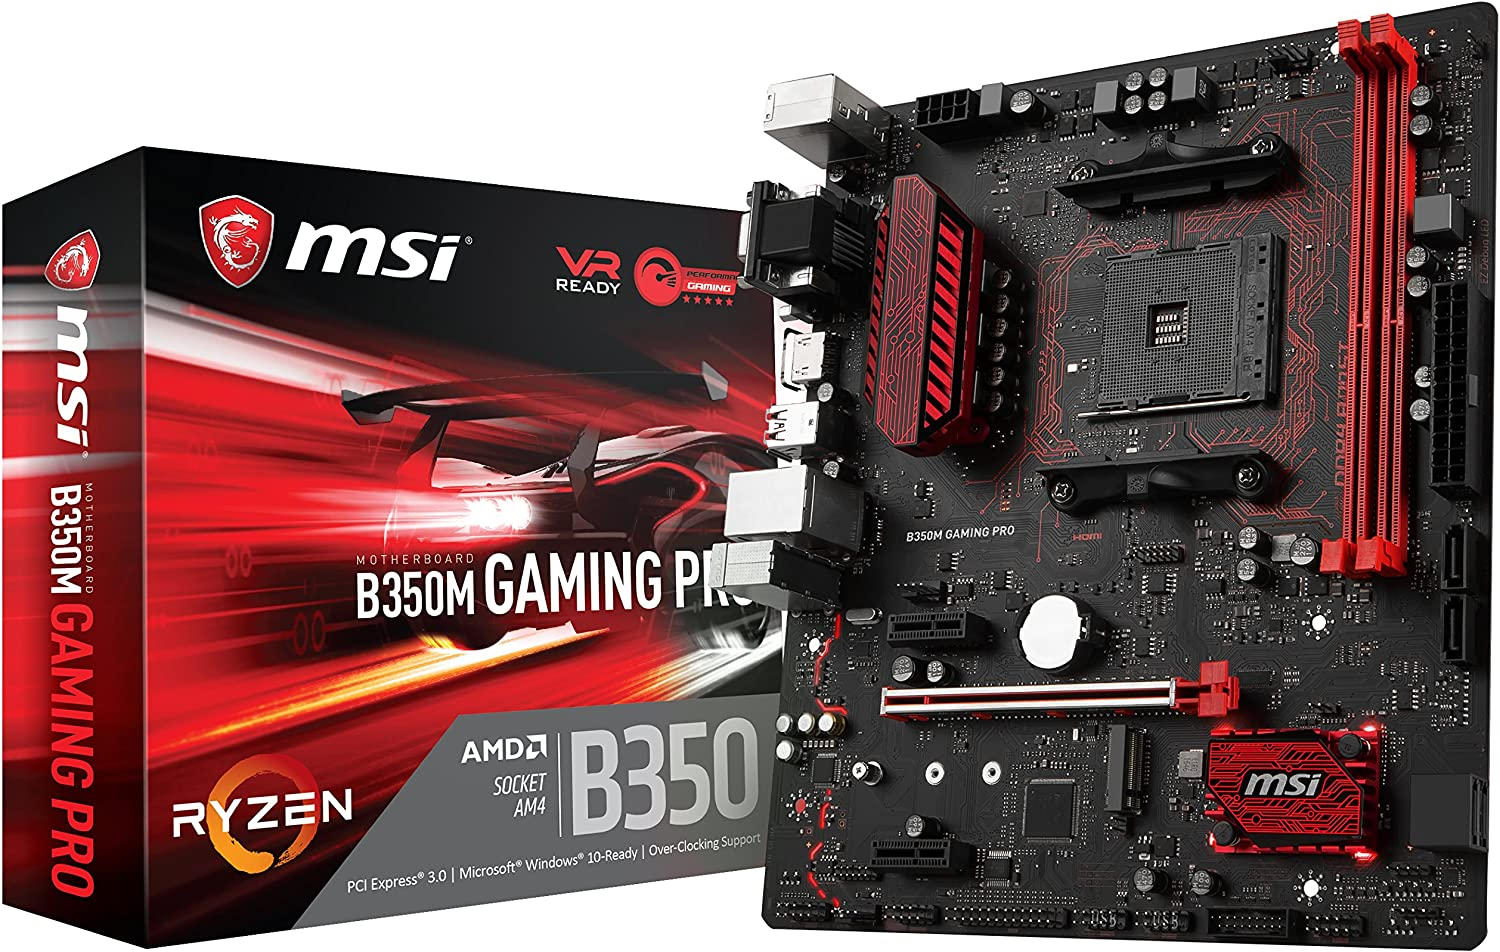 MSI Gaming AMD Ryzen B350 DDR4 VR Ready HDMI USB 3 CFX micro-ATX Motherboard (B350M GAMING PRO)